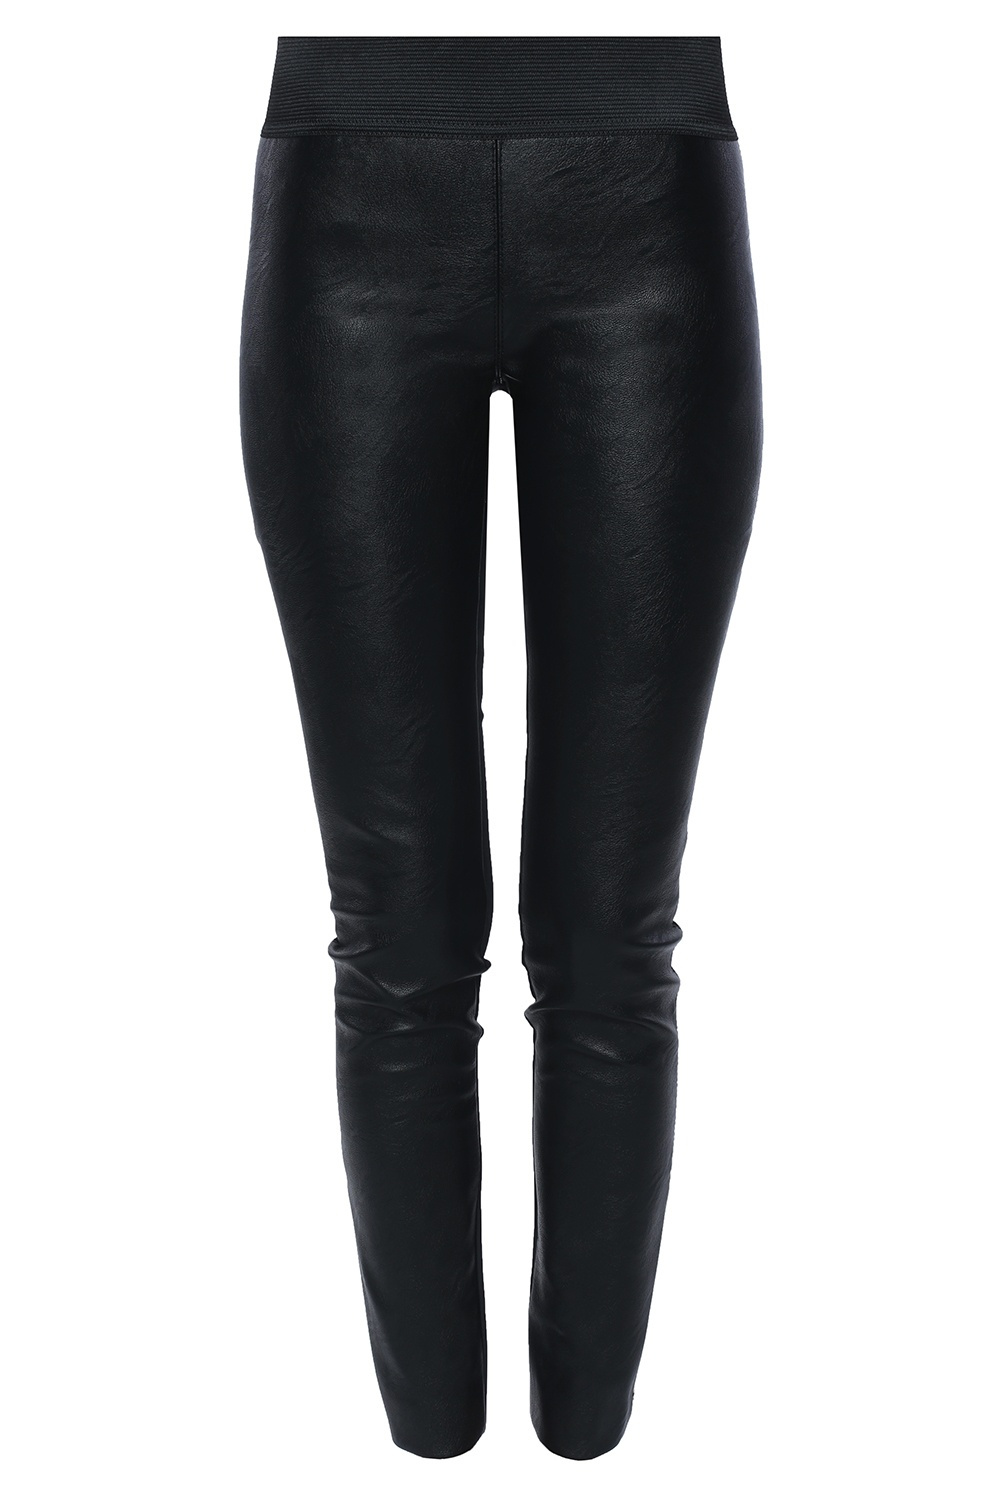 Stella McCartney Tapered leg trousers